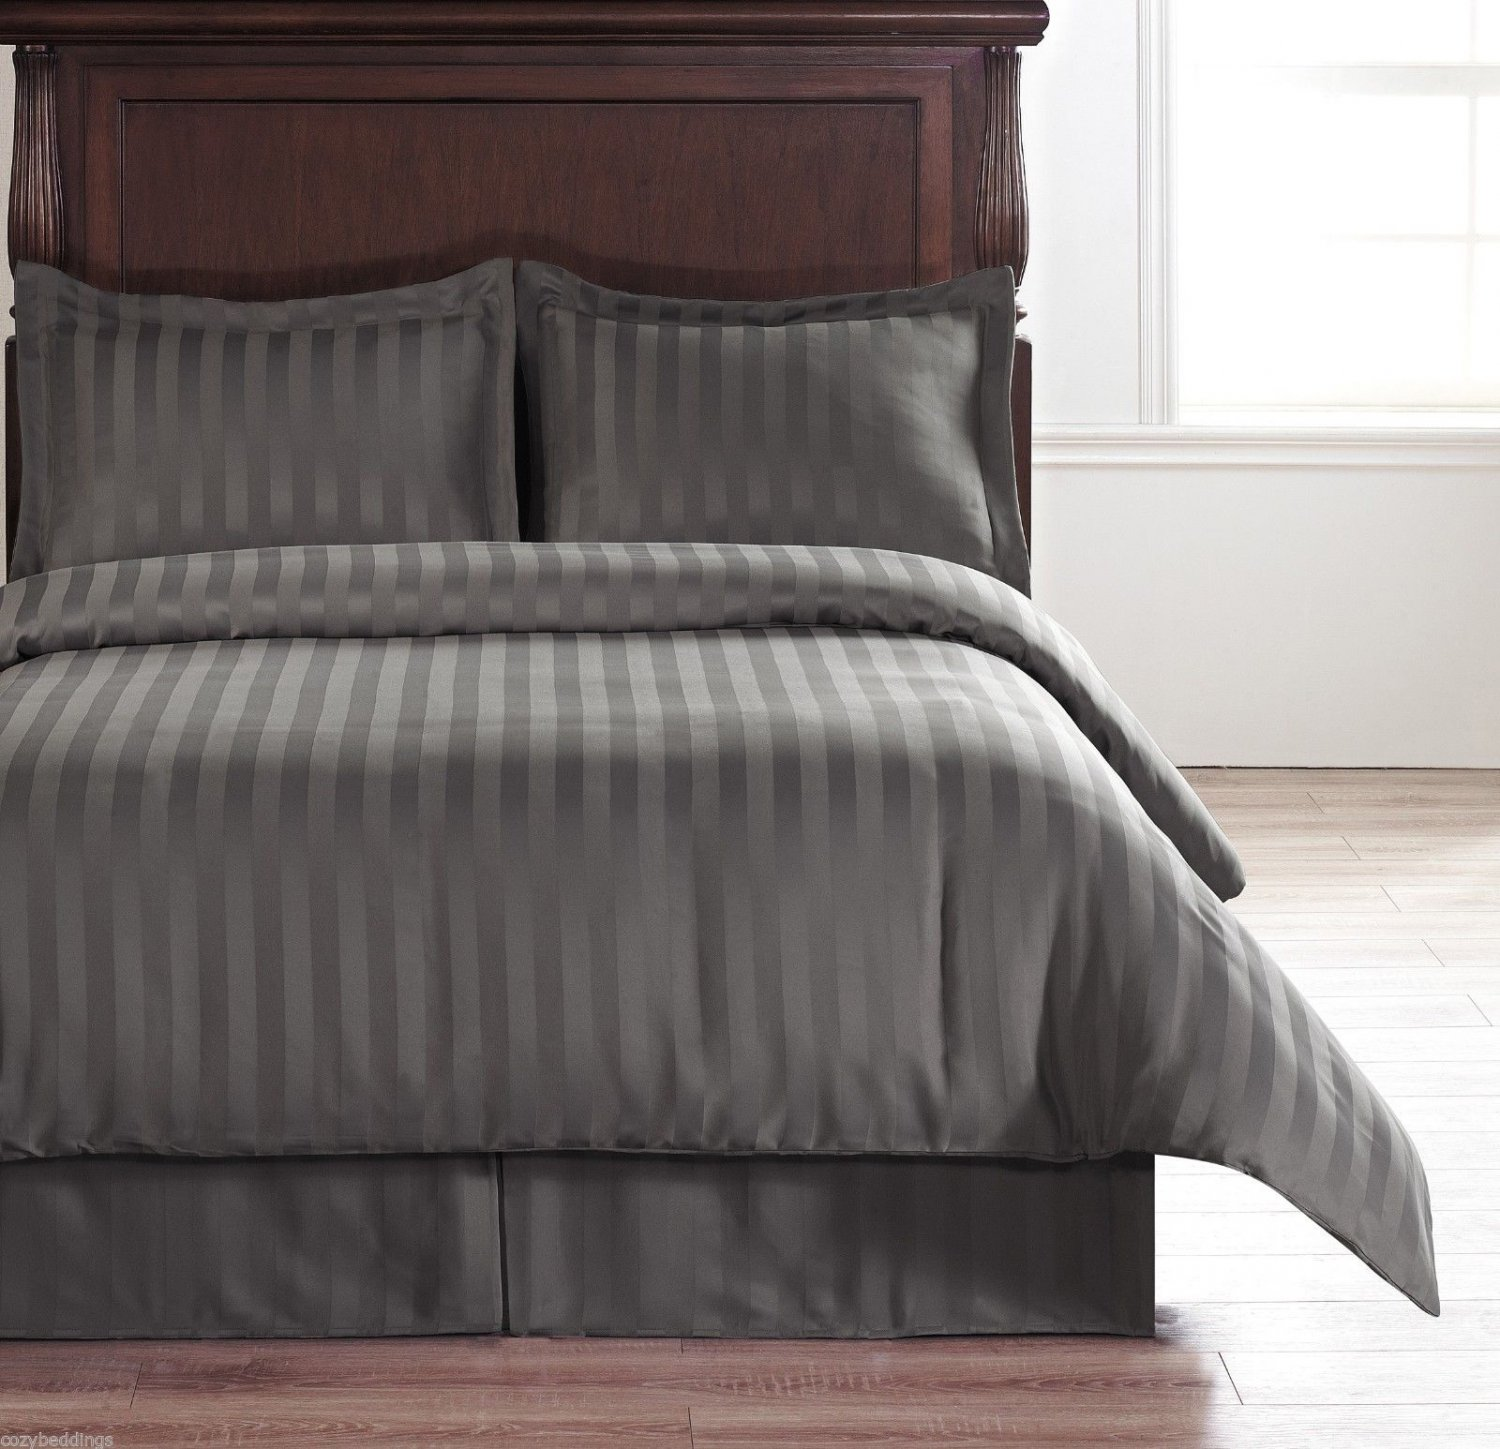 Hotel Collection Charcoal Grey 5pc Reversible Duvet Set Full, Queen Bed Size